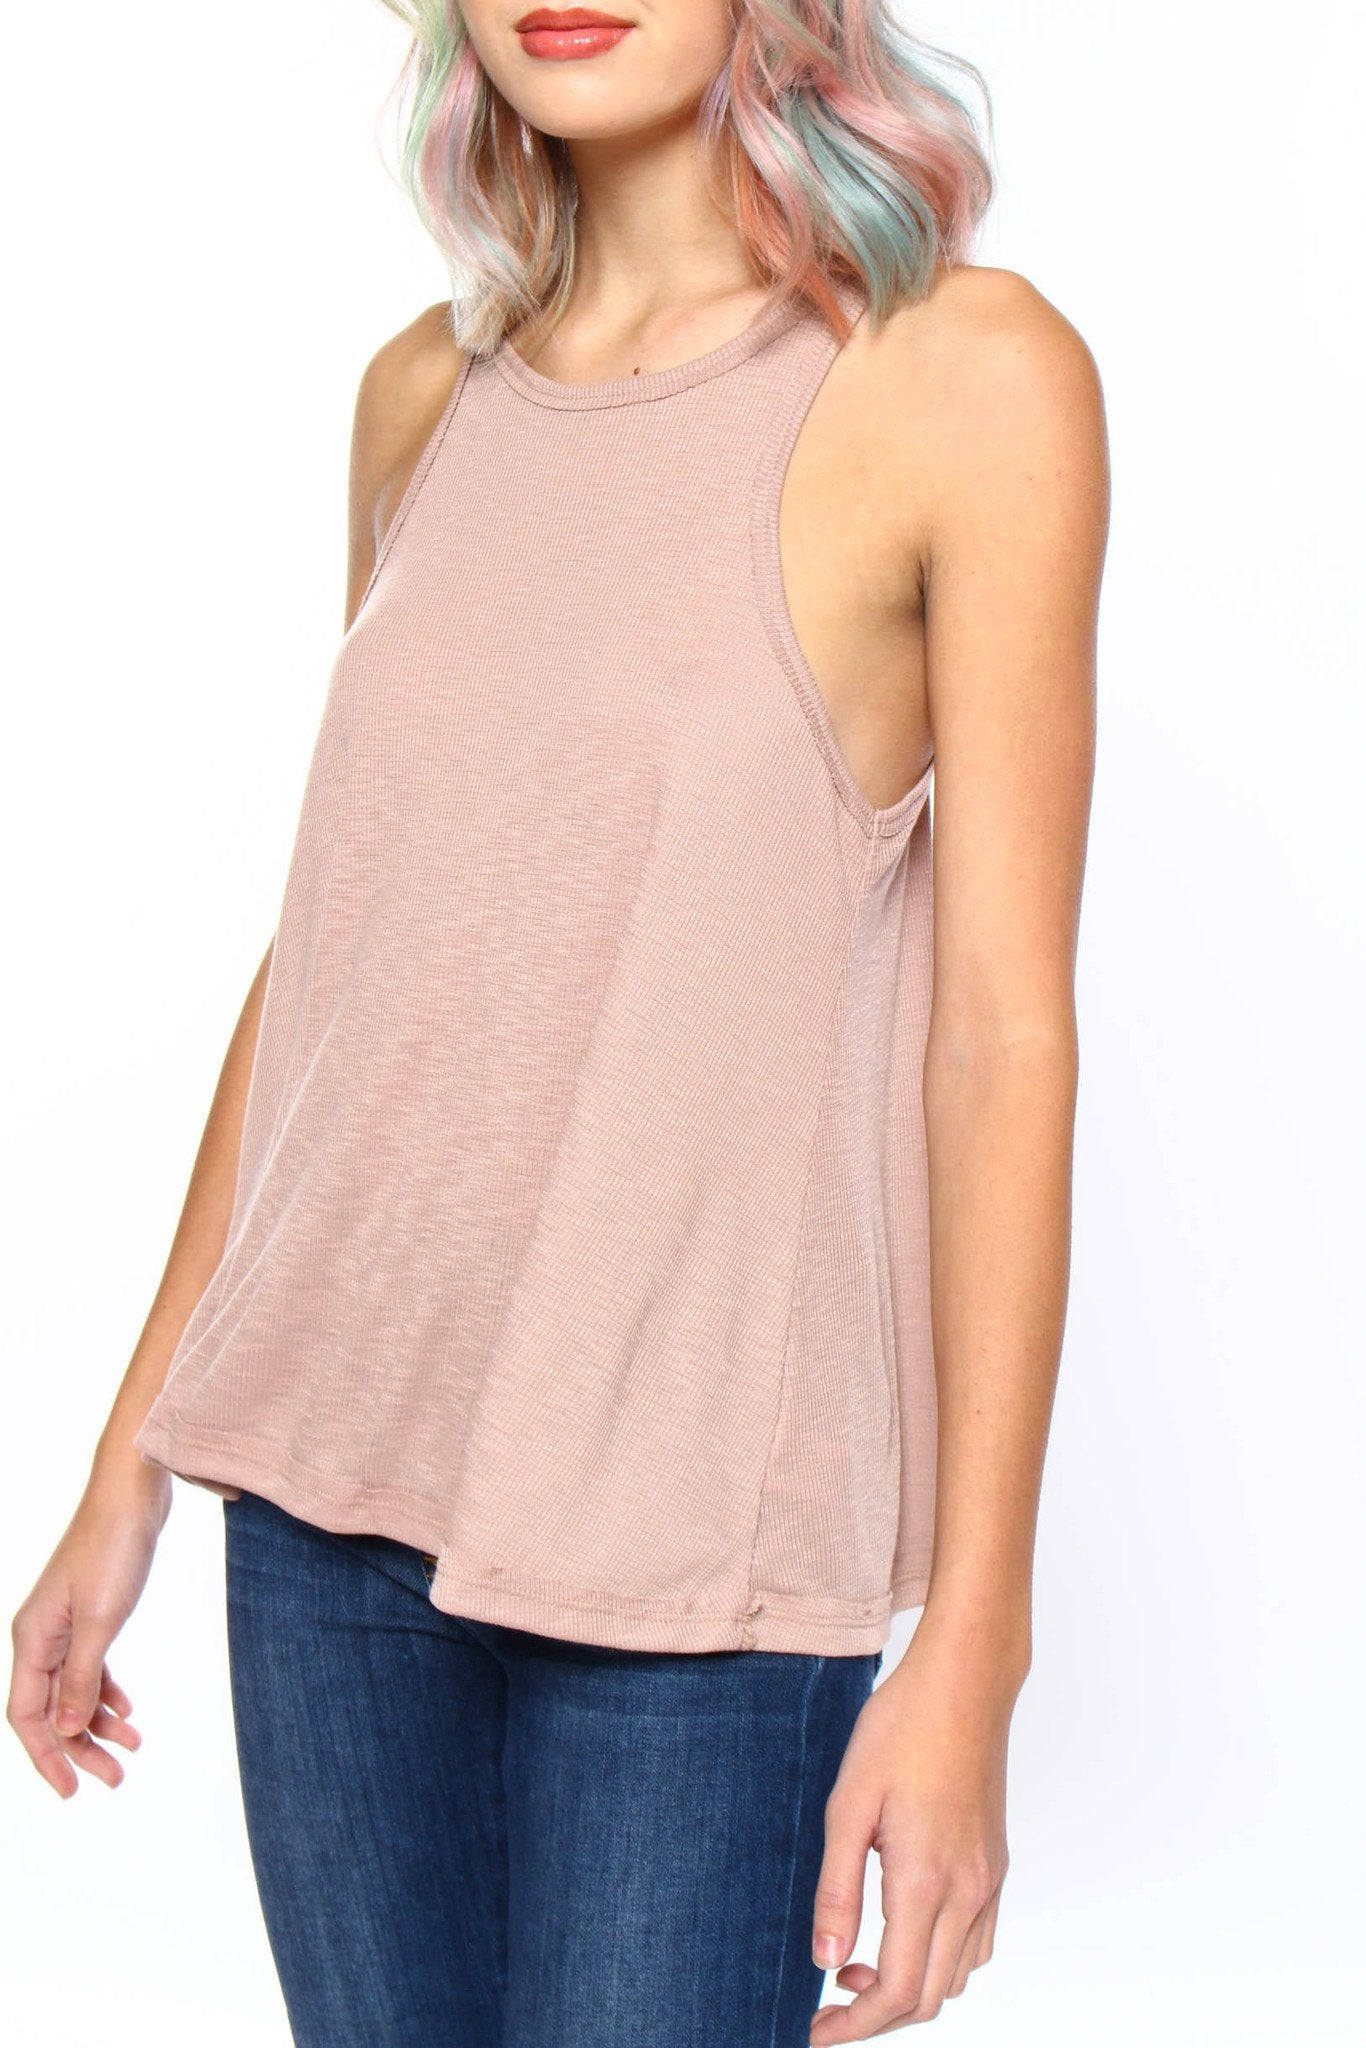 Free People Long Beach Tank - Neutral